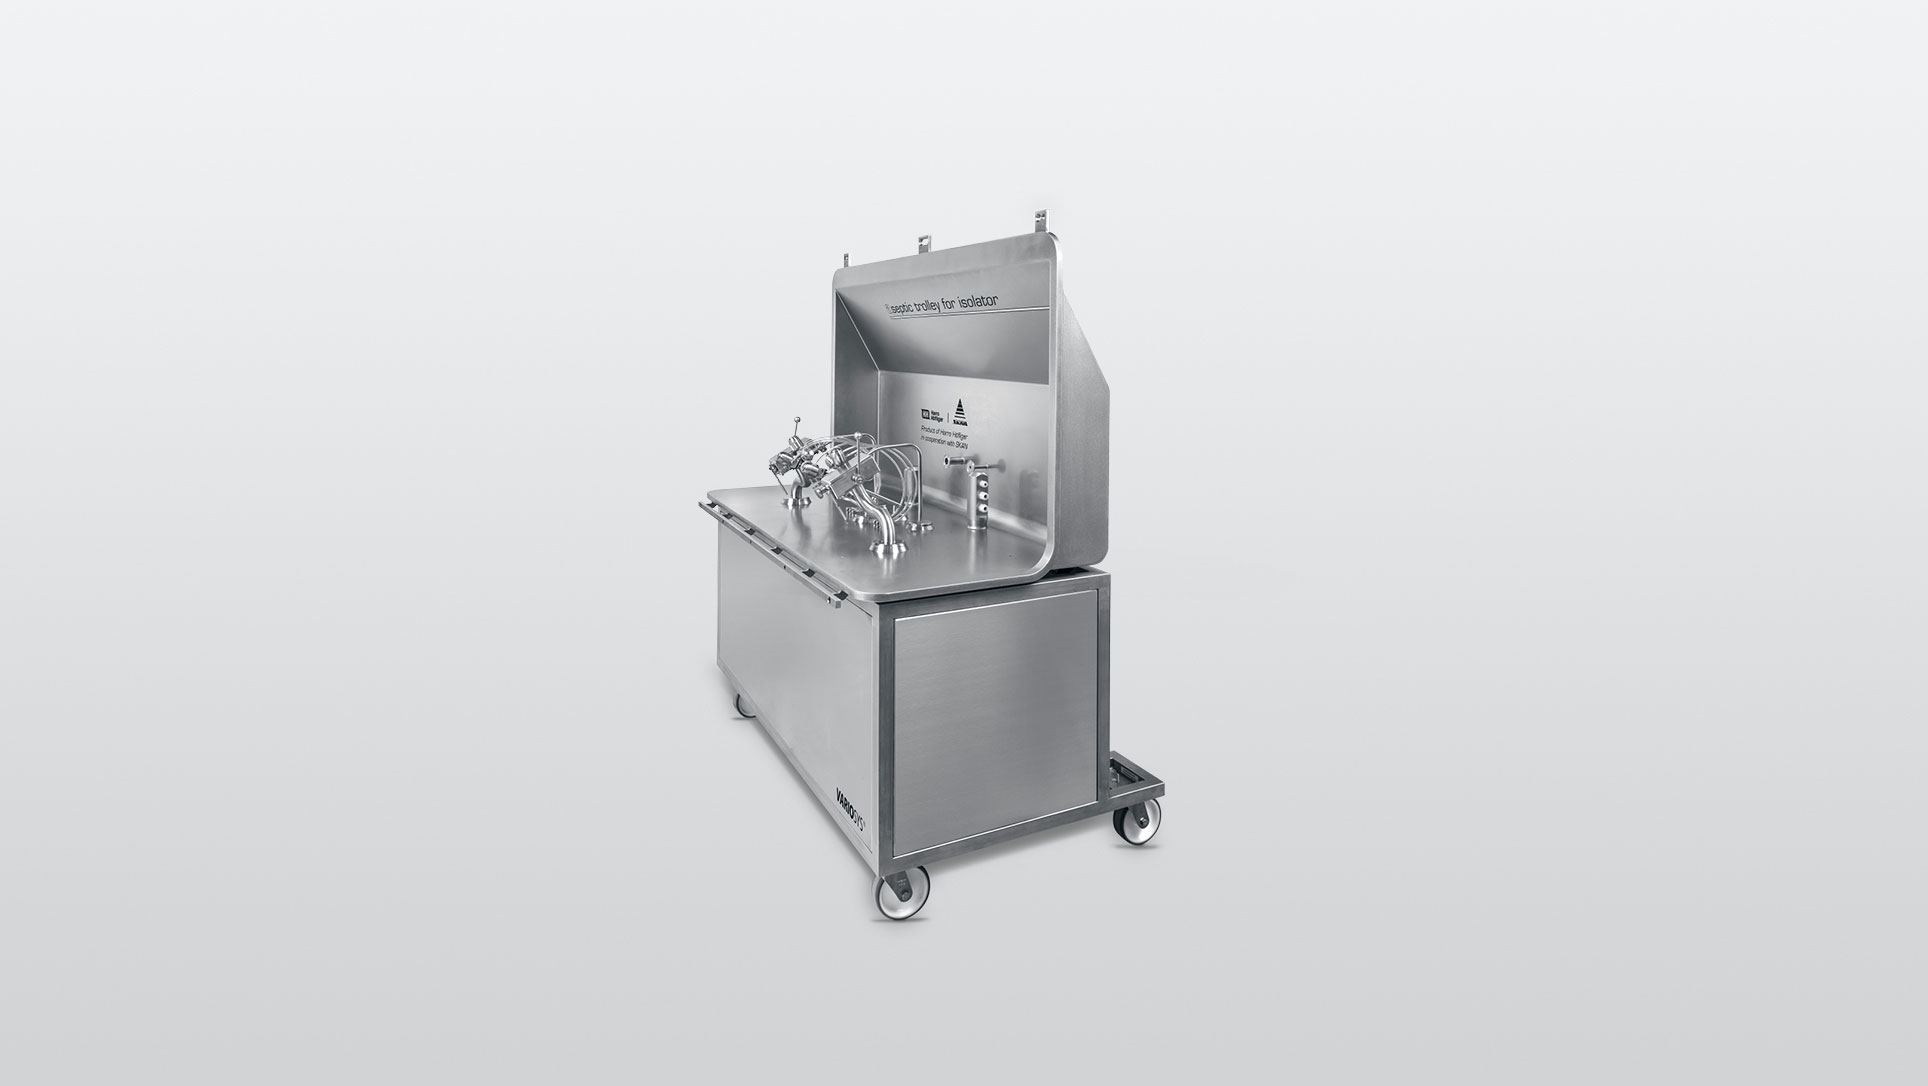 Trolley with liquid dosing unit